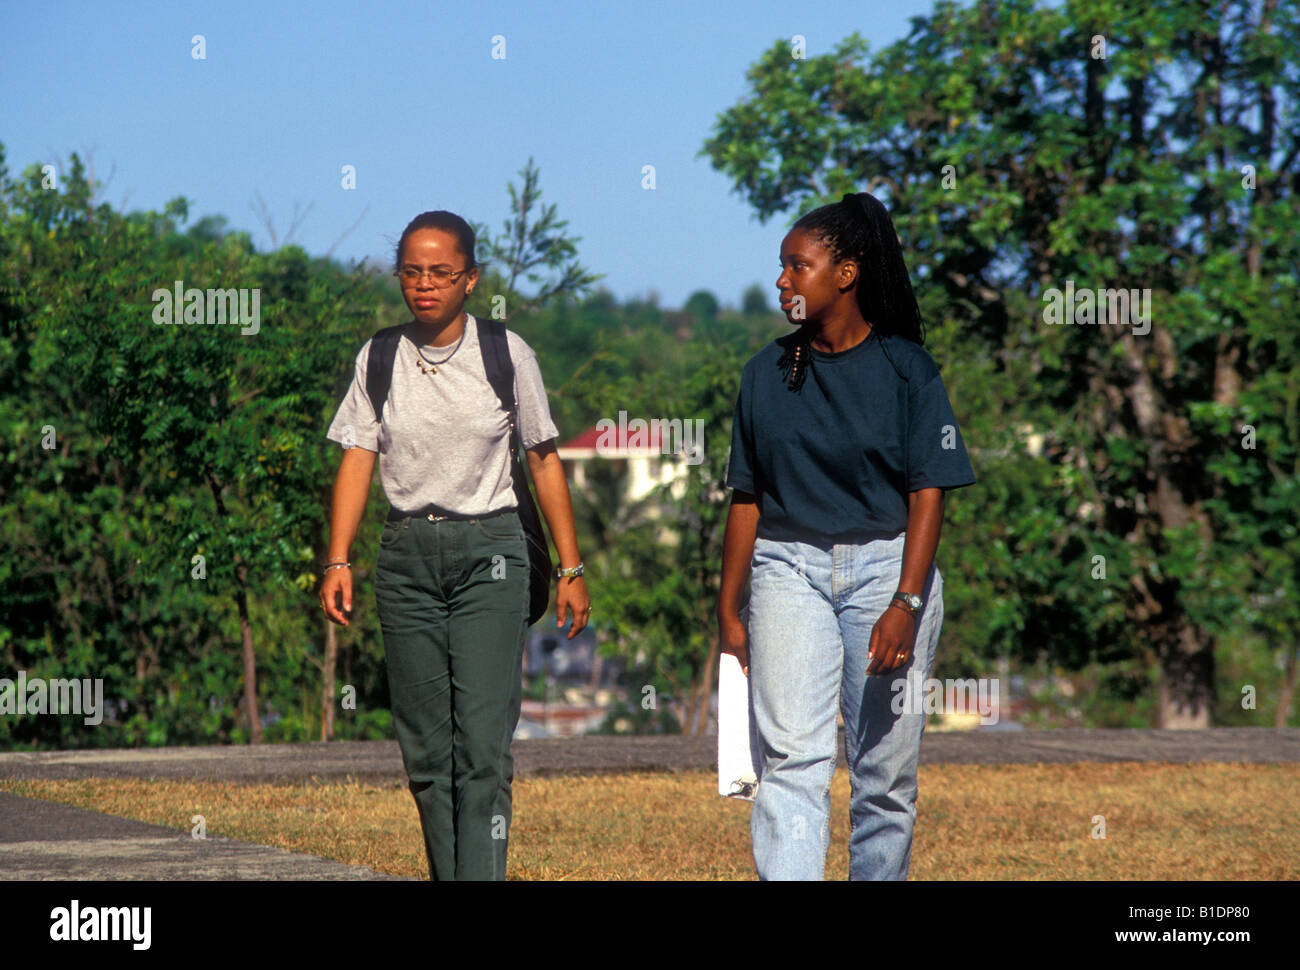 2, two, young women, students, Universite de Fouillole, Fouillole University, city of Pointe-a-Pitre, Pointe-a-Pitre, - Stock Image